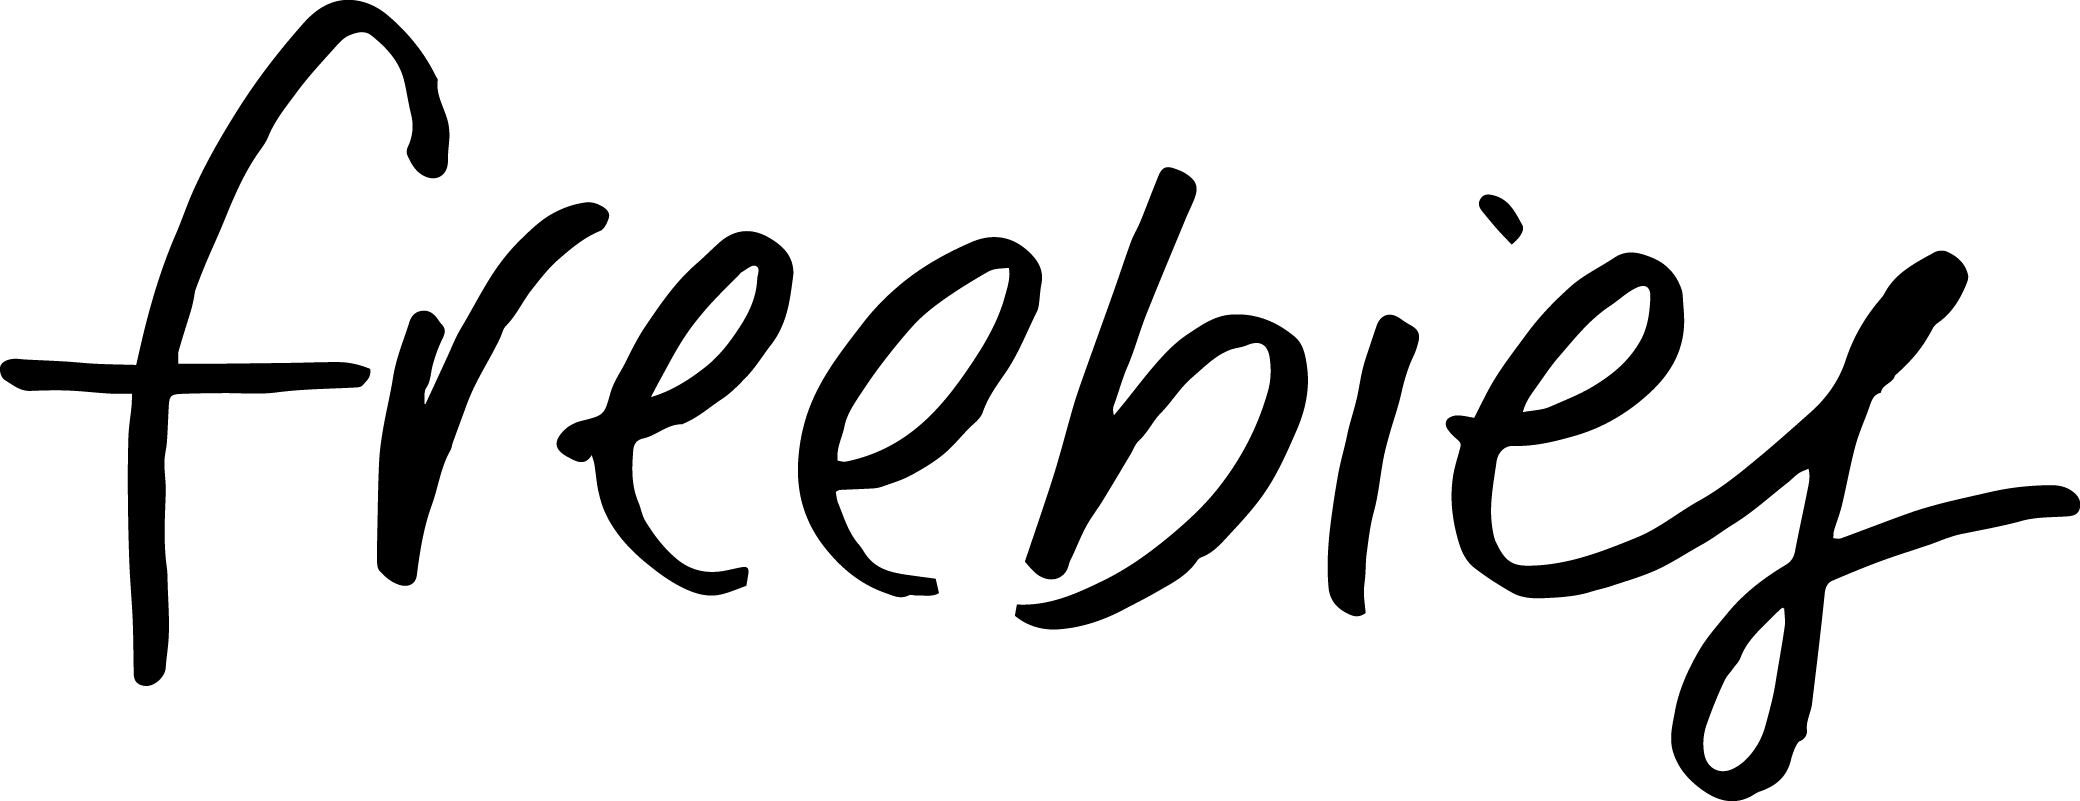 LACYLETTERING-17.png